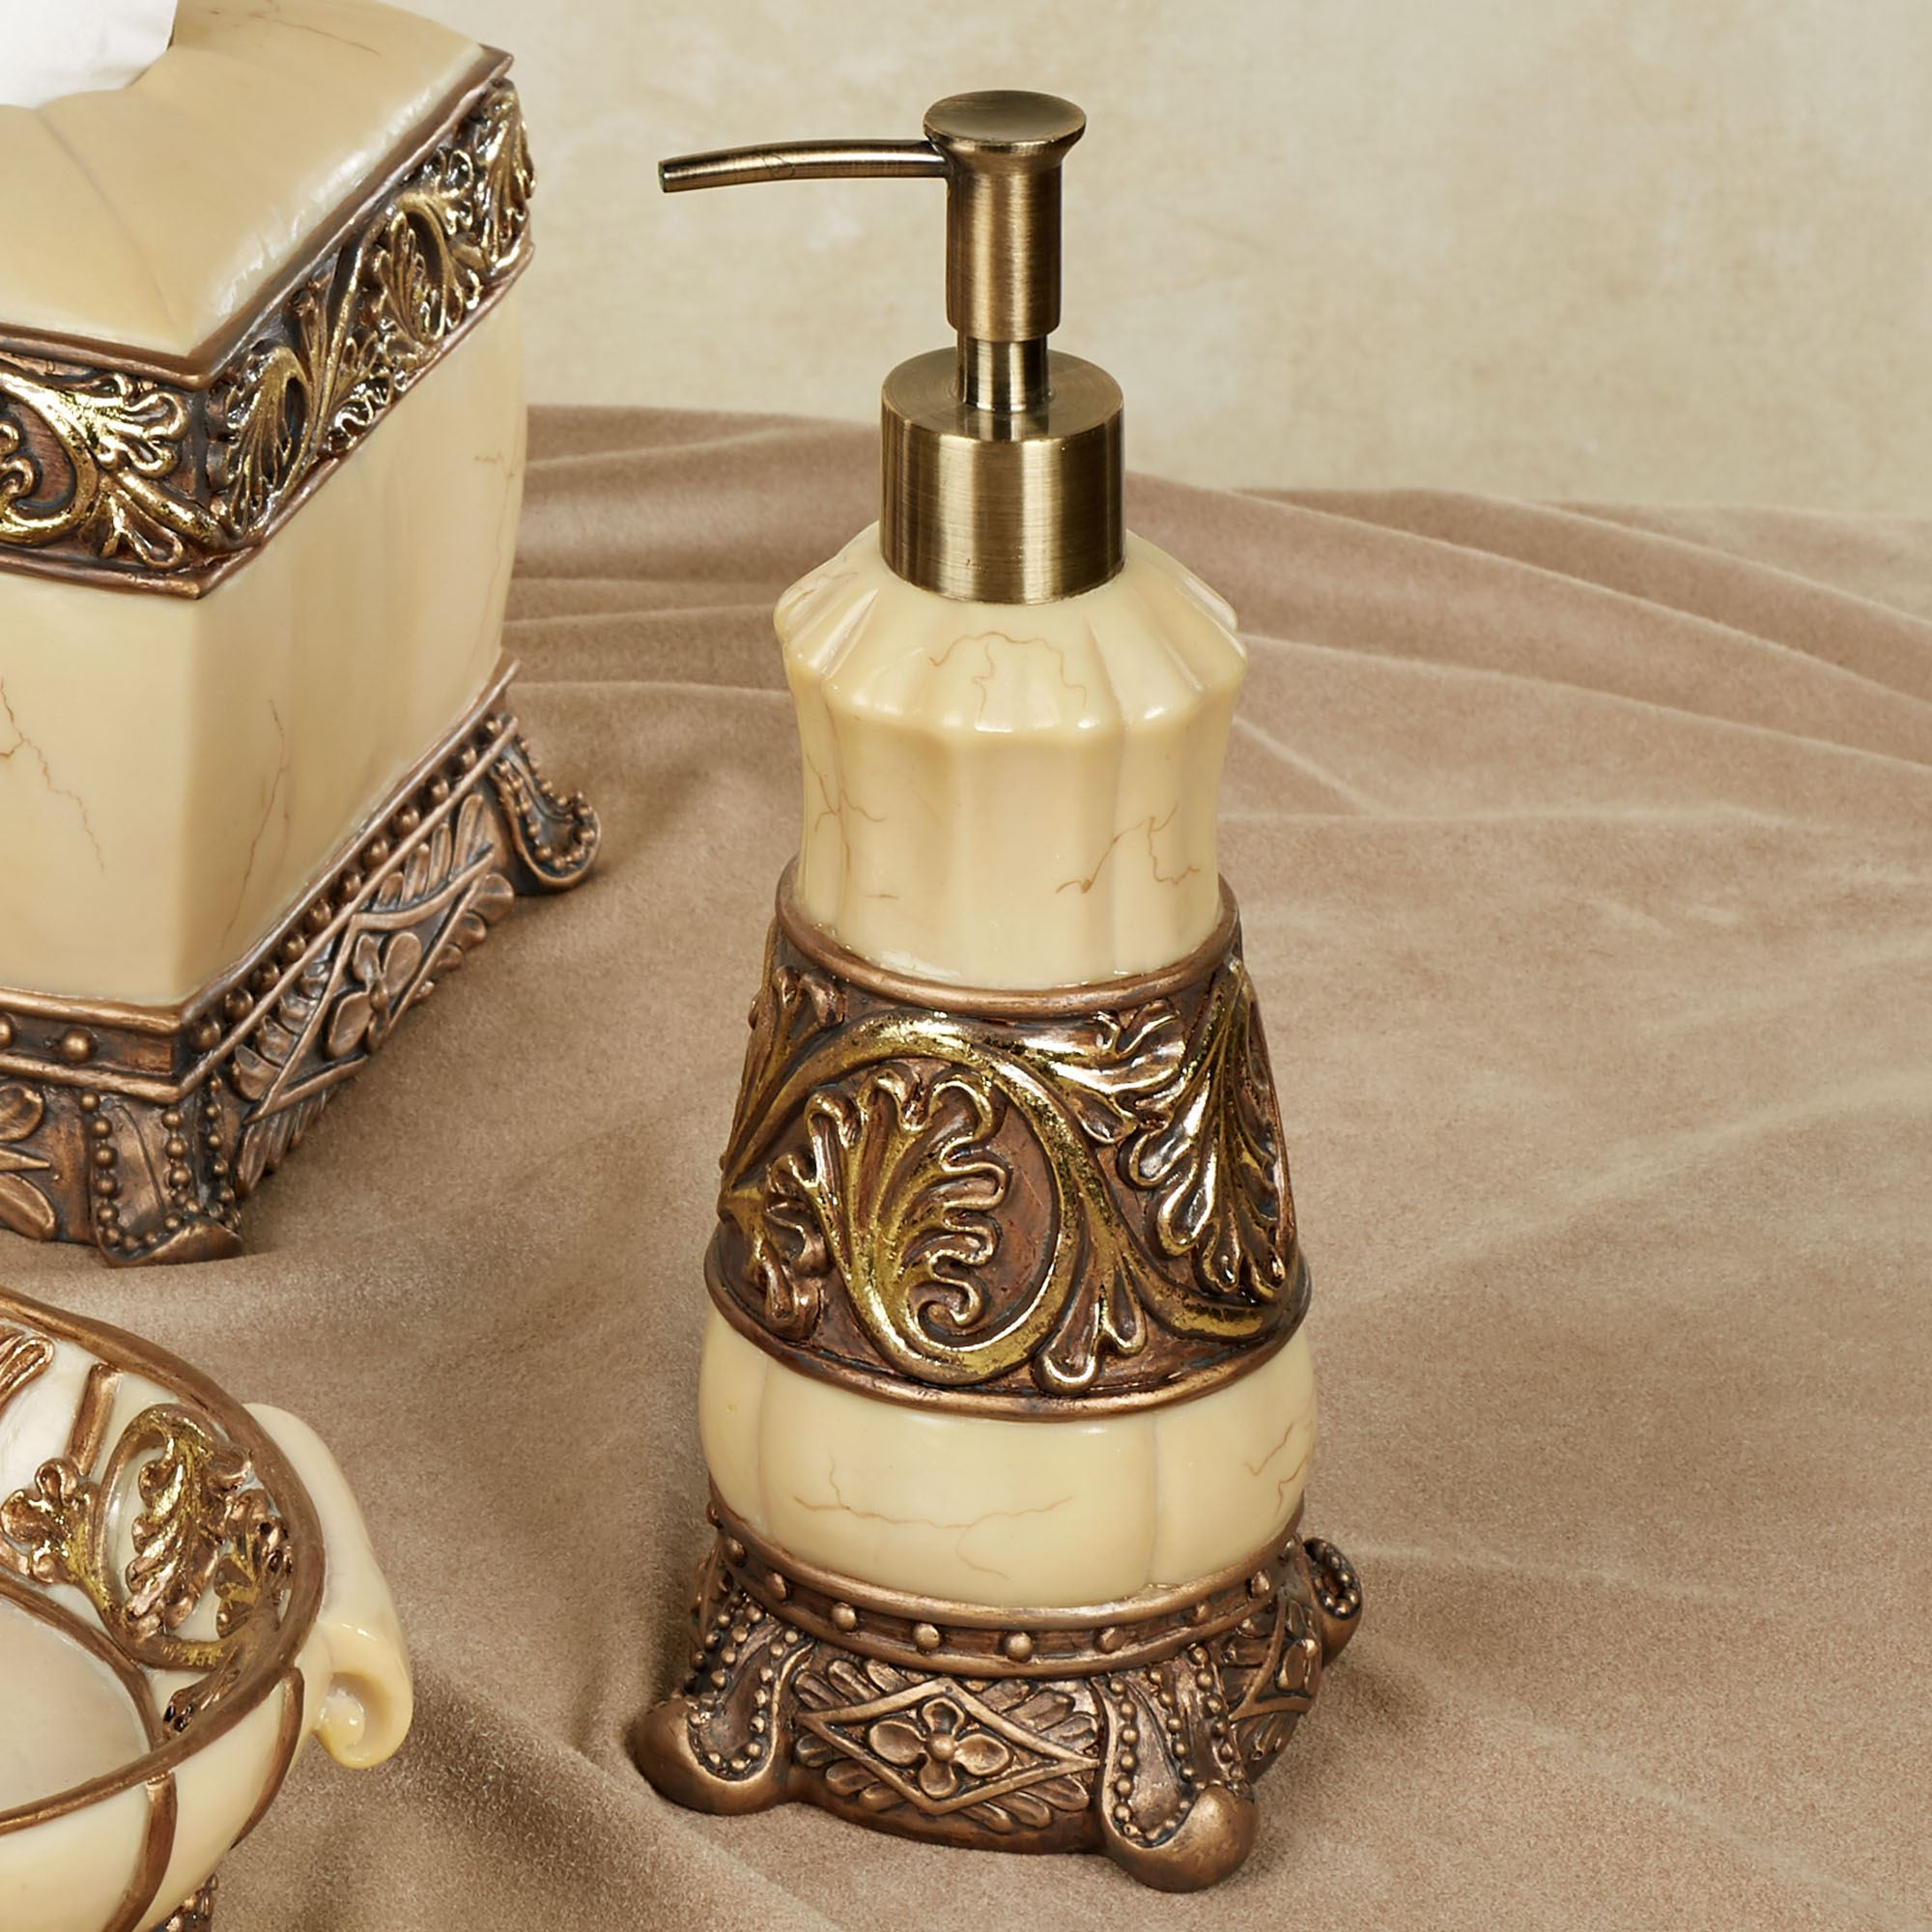 chalmette lotion soap dispenser goldivory - Bathroom Accessories Elegant